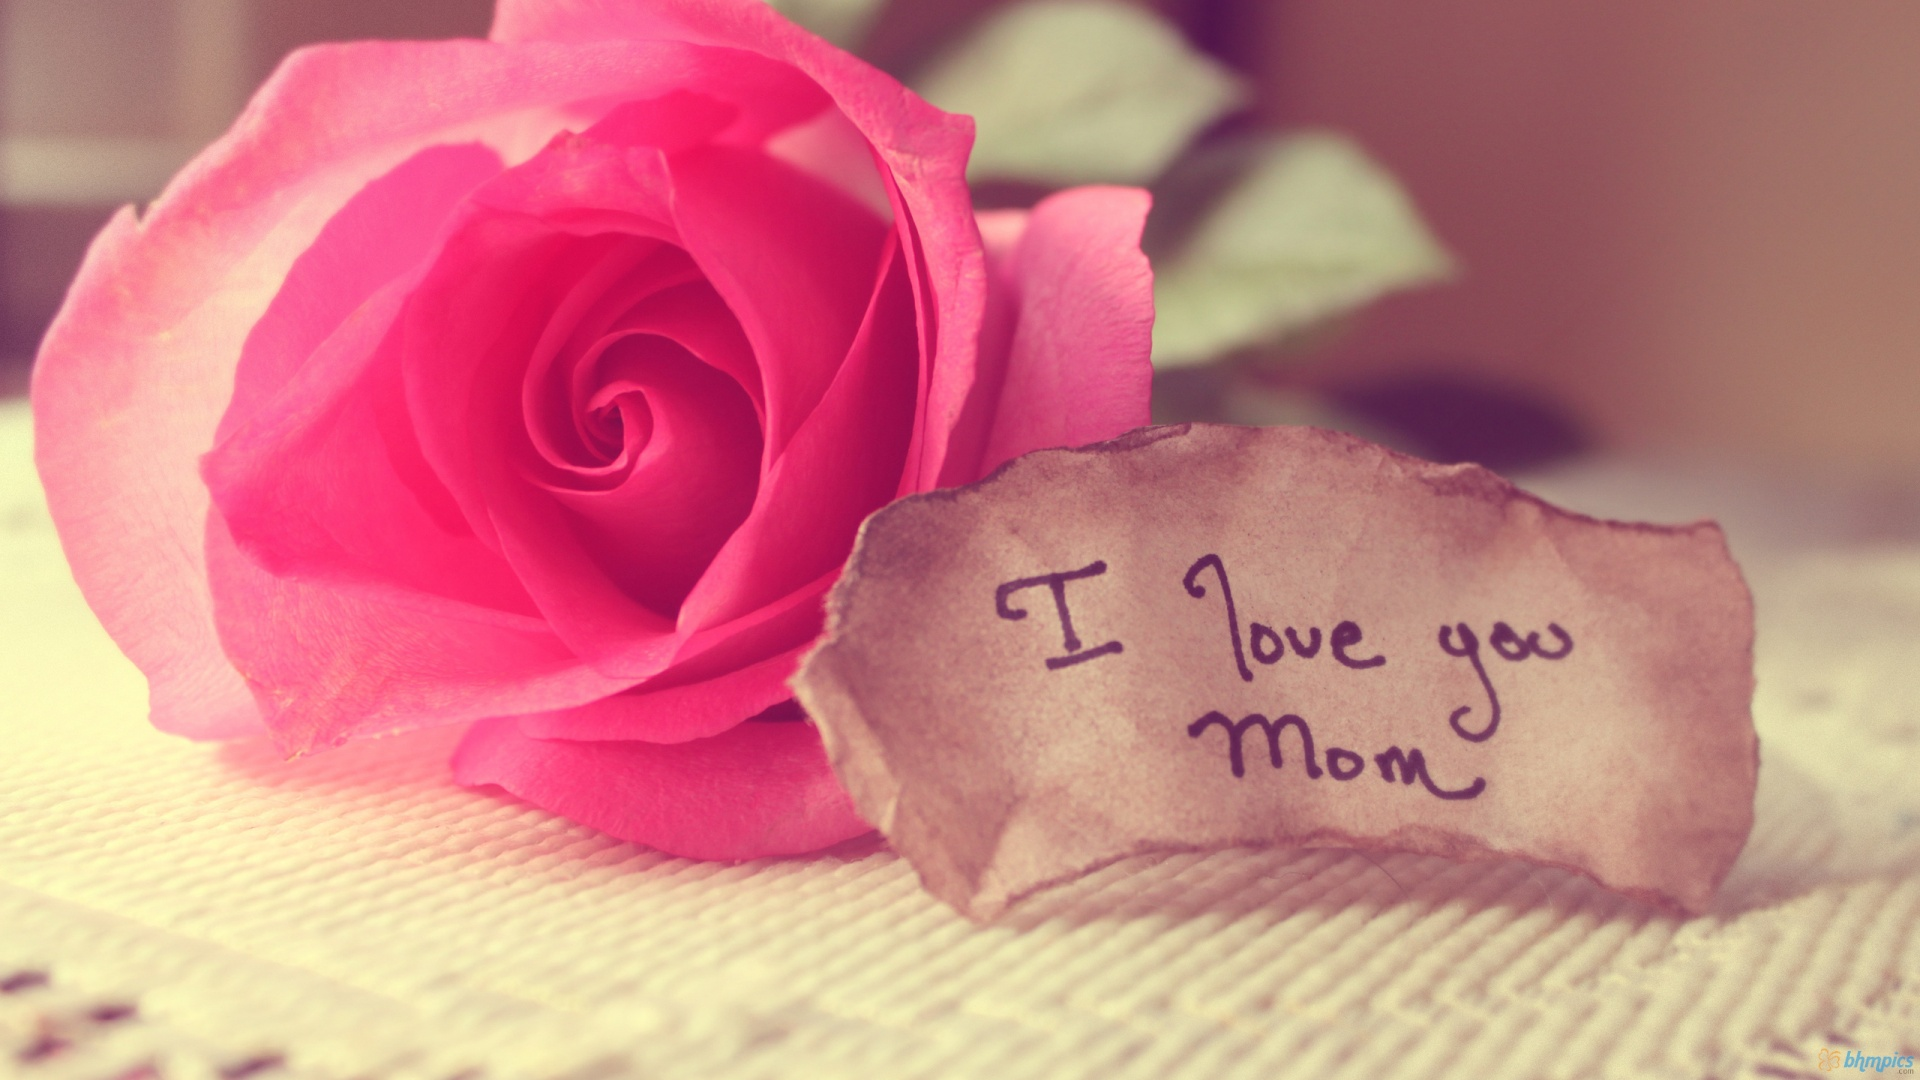 Download Mothers Day I Love You Mom Wallpaper HD 3155 Full Size 1920x1080